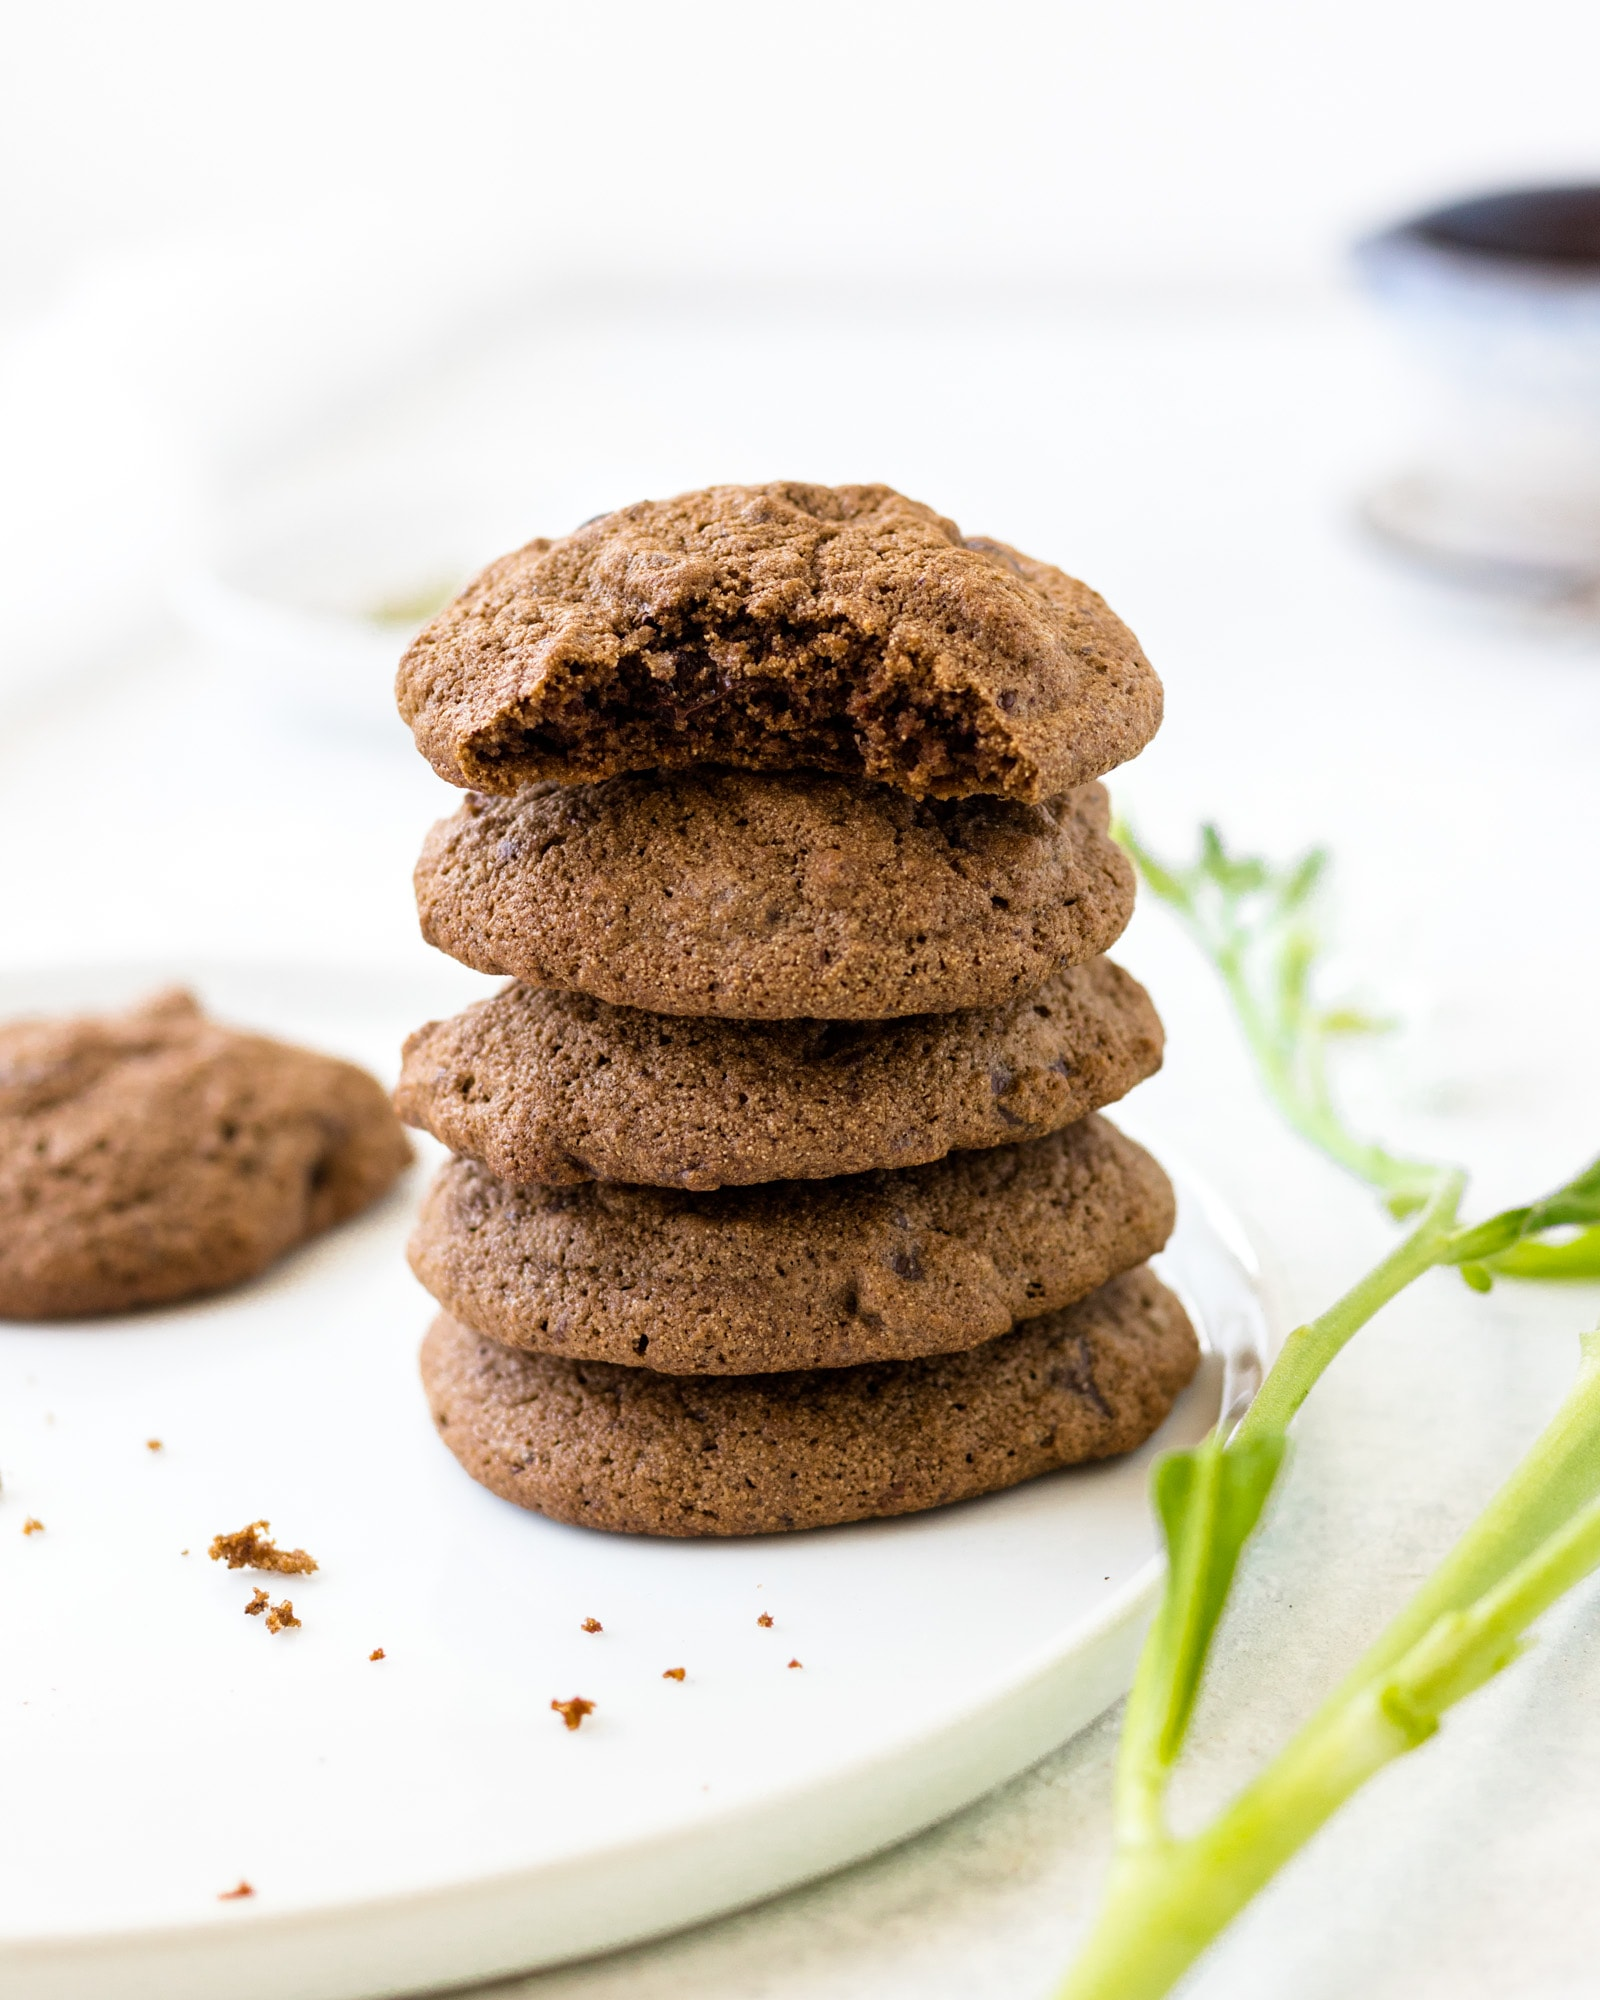 Stack of 5 Double Chocolate Cardamom Cookies with the top cookie partially eaten.